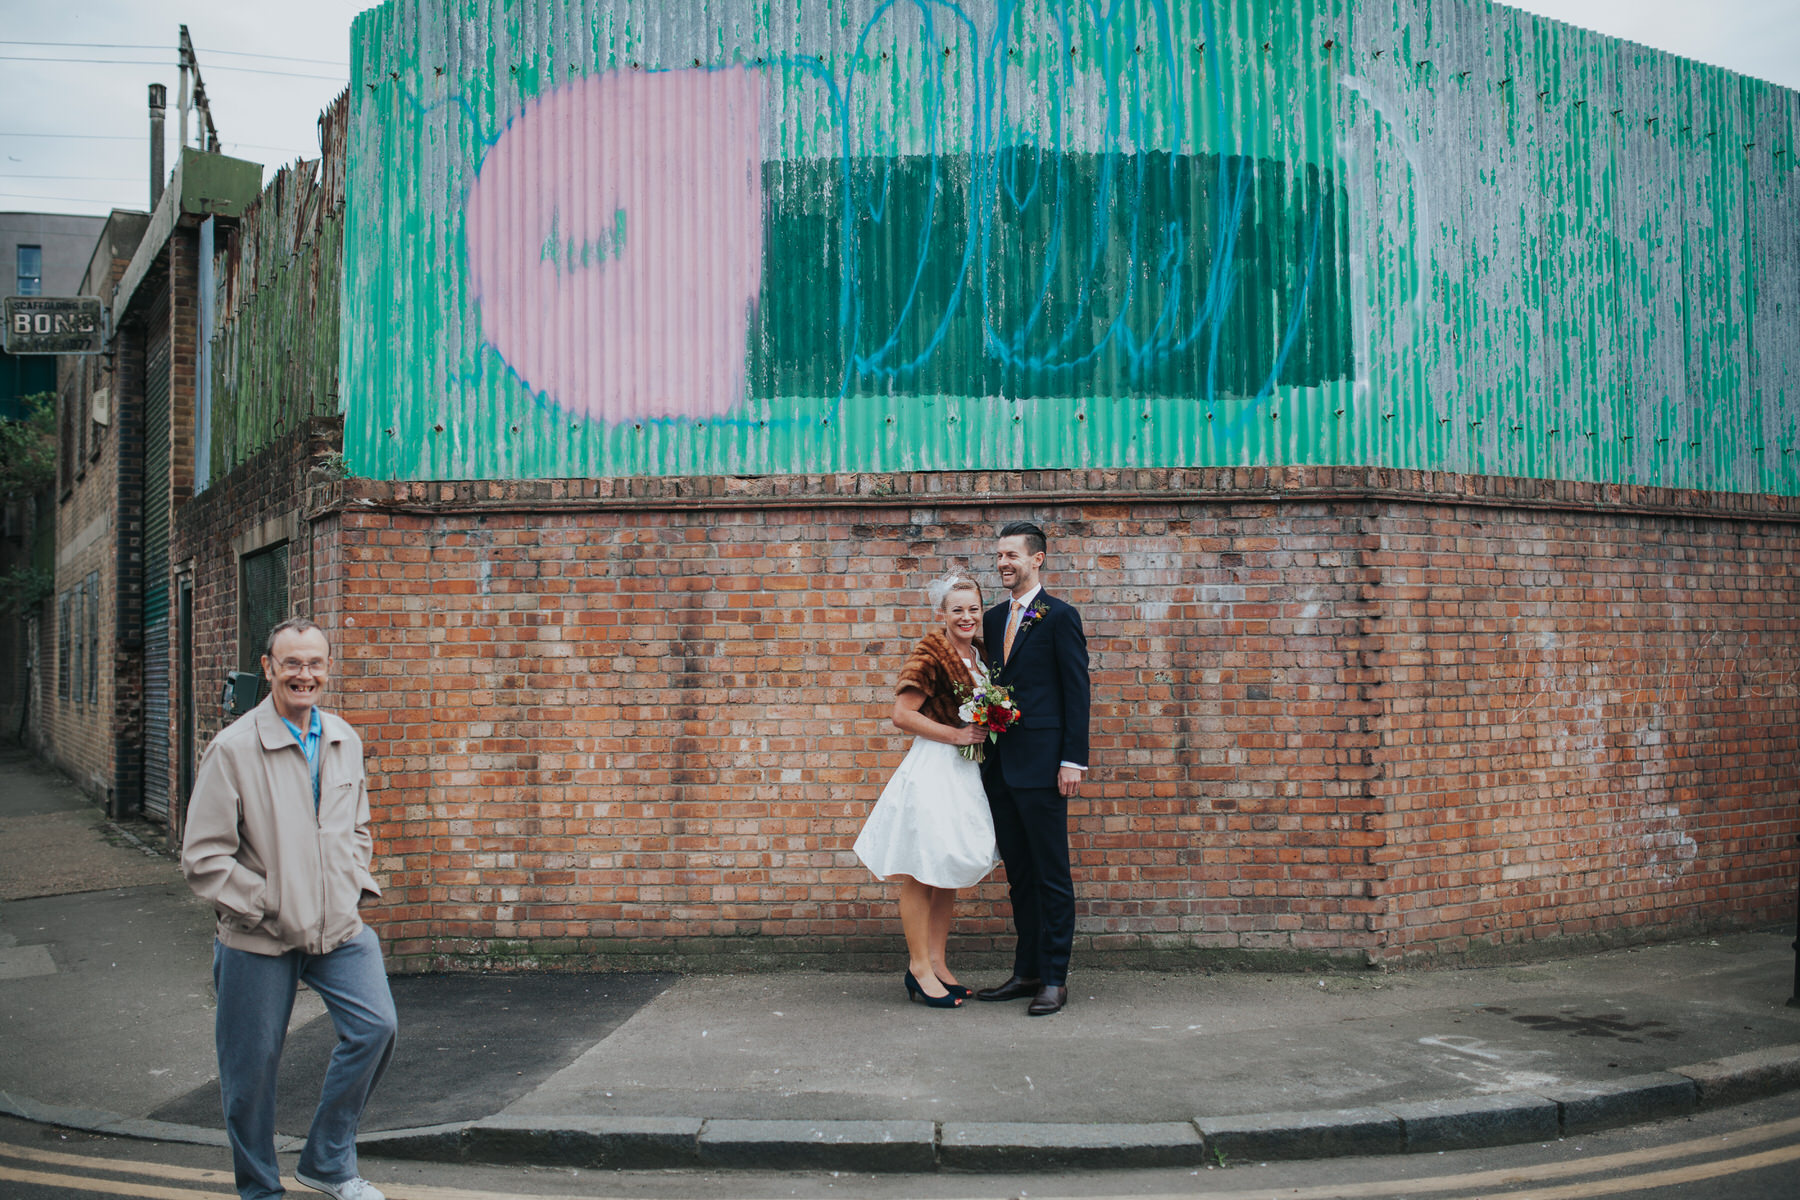 MS-Londesborough-Pub-wedding-Hackney-alternative-photographer-49-London-East-End-wedding-quirky-bride-groom-grafitti-photobomb.jpg